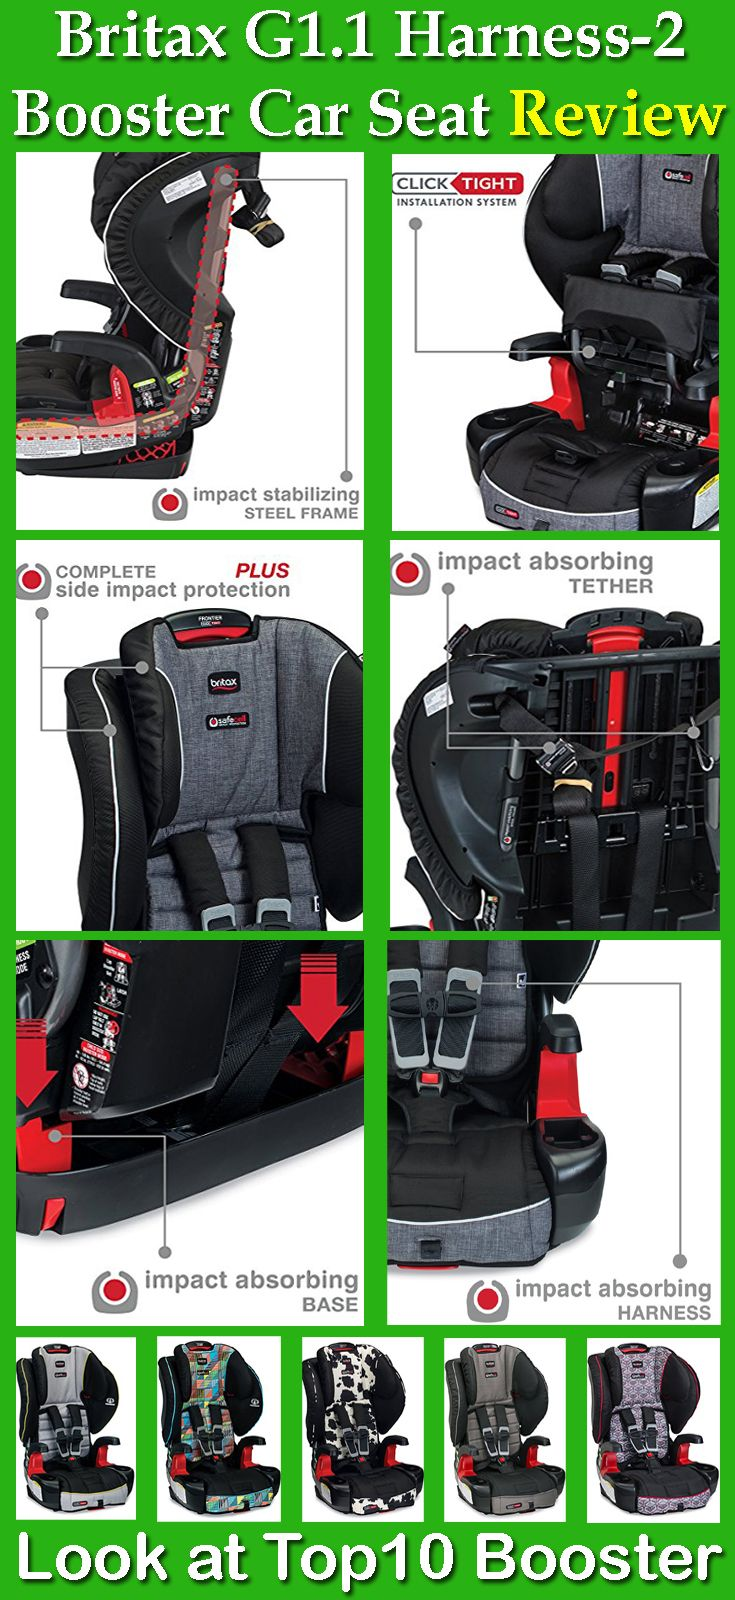 Britax G1 1 Frontier Clicktight Combination Harness 2 Booster Car Seat Works As A Harness Car Seat For Ch Best Baby Car Seats Best Booster Seats Baby Car Seats